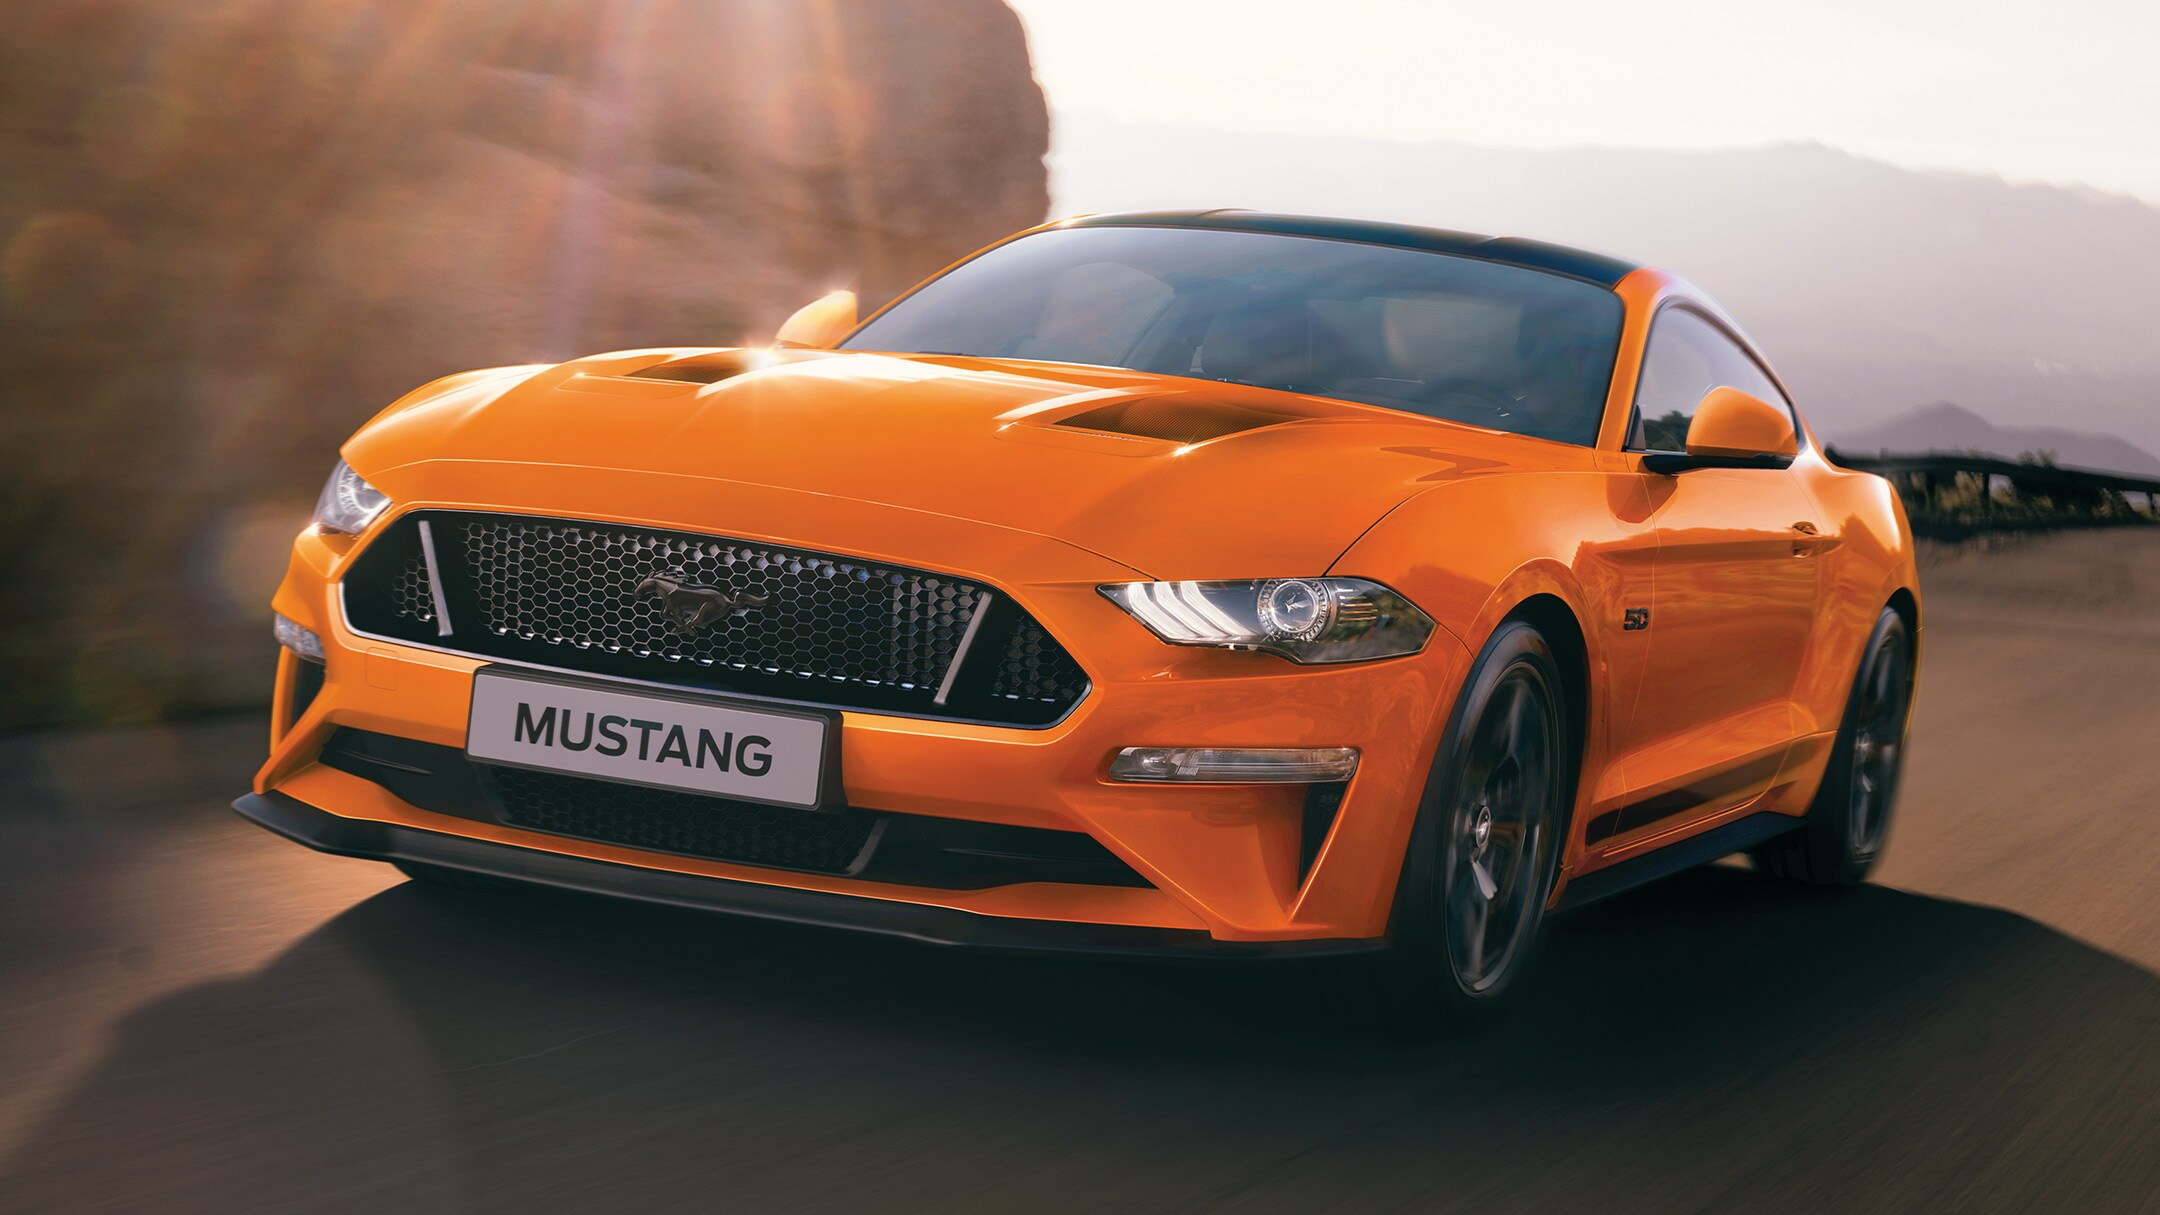 New Orange Ford Mustang being driven on country roads